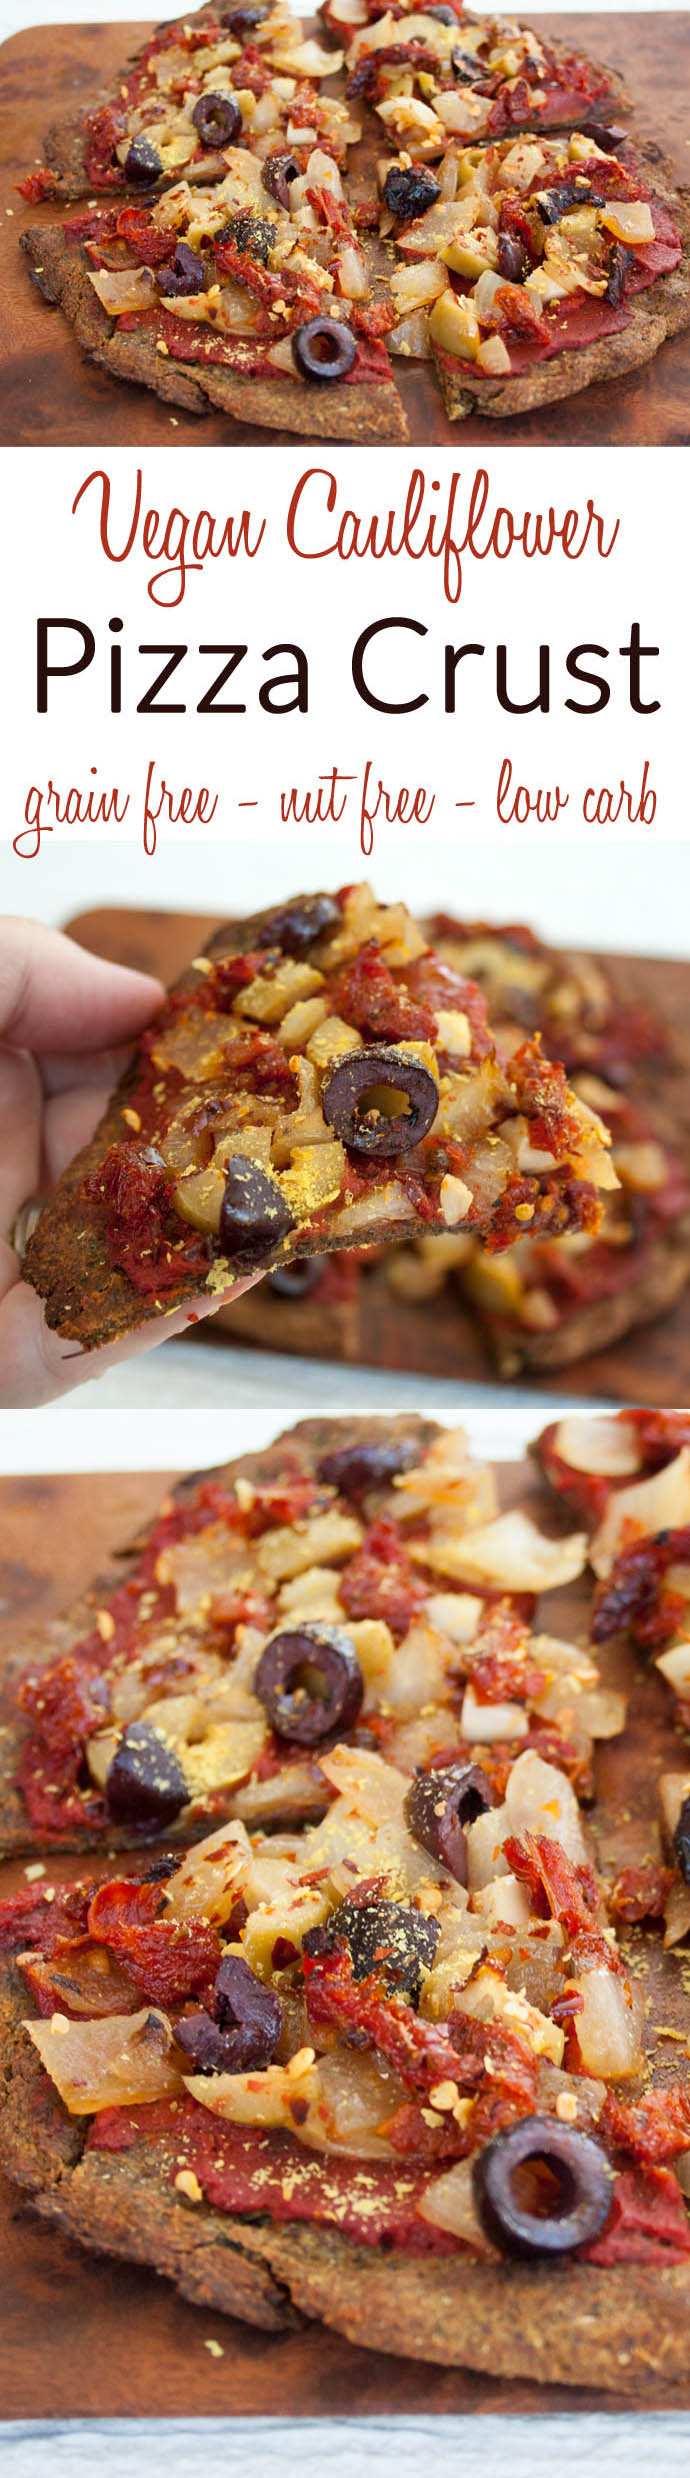 Cauliflower Pizza Crust collage photo with two photos and text in between.